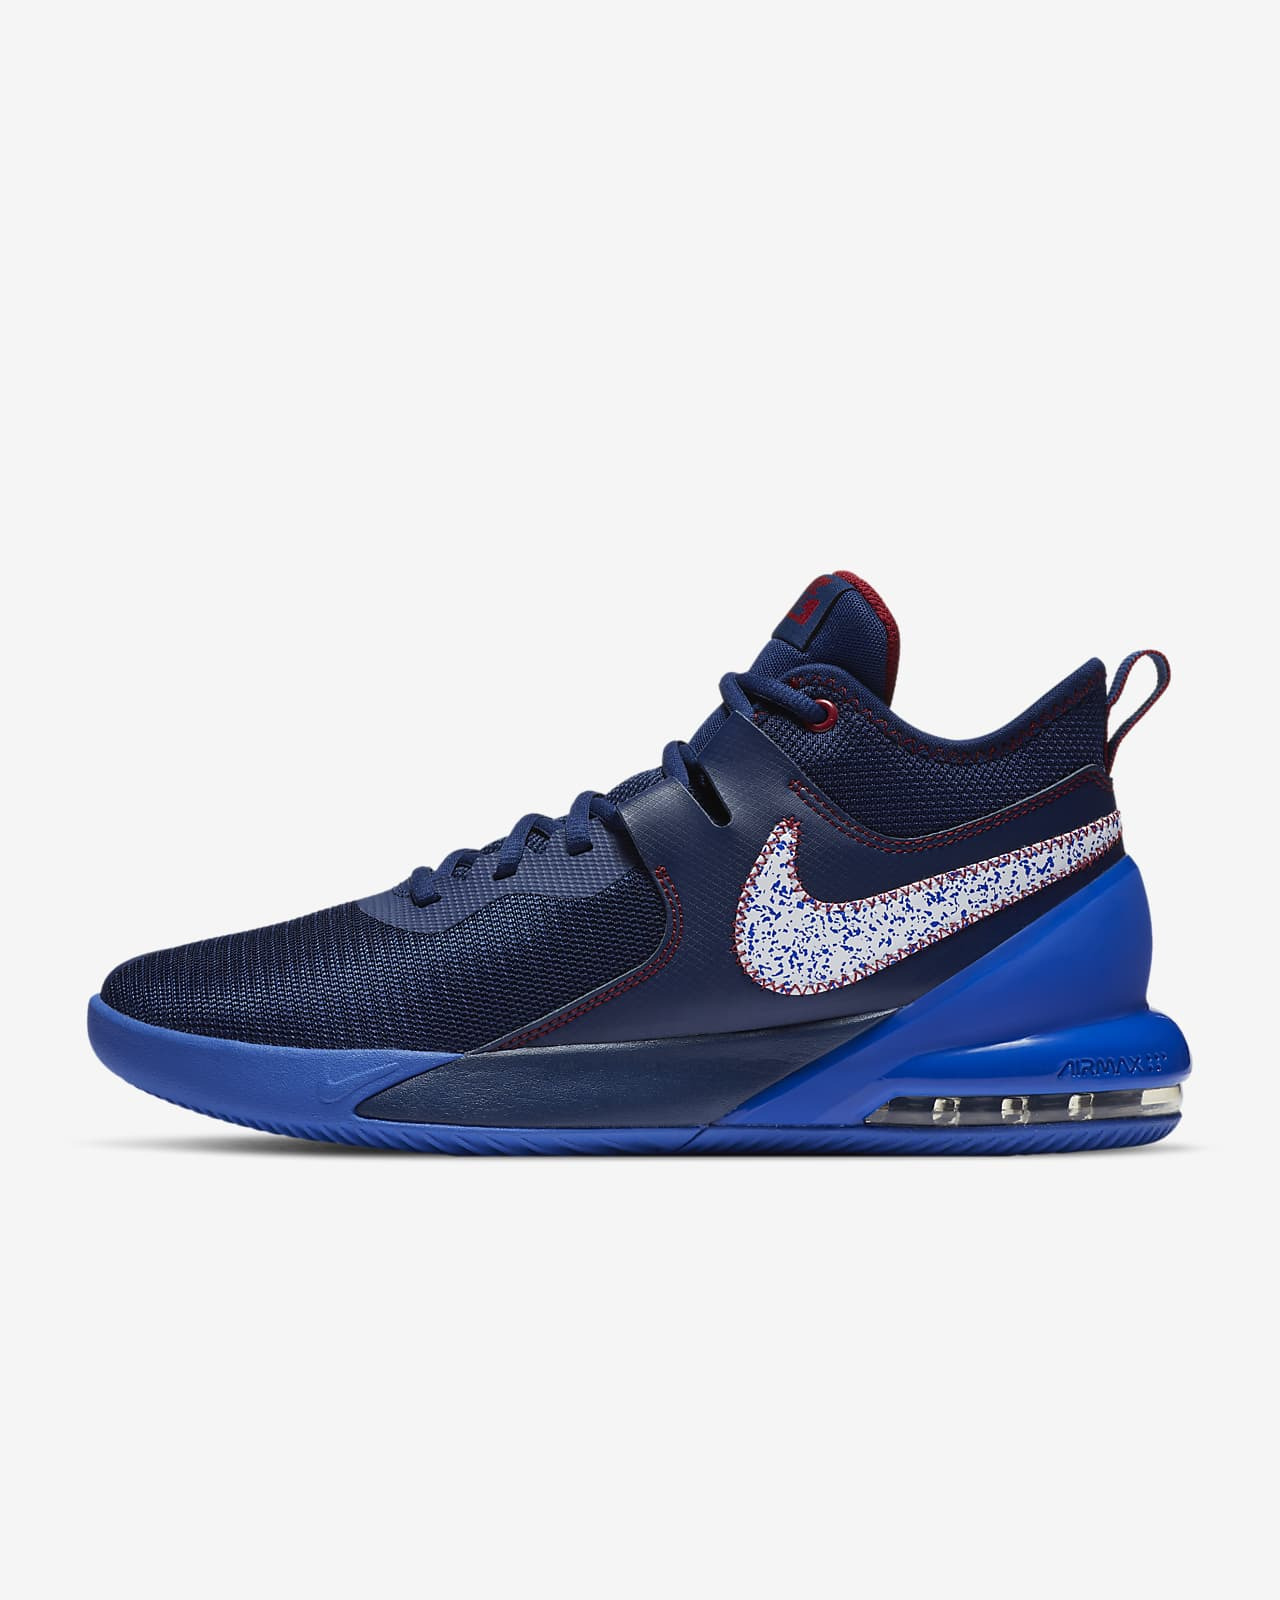 Nike Air Max Impact Basketballschuh